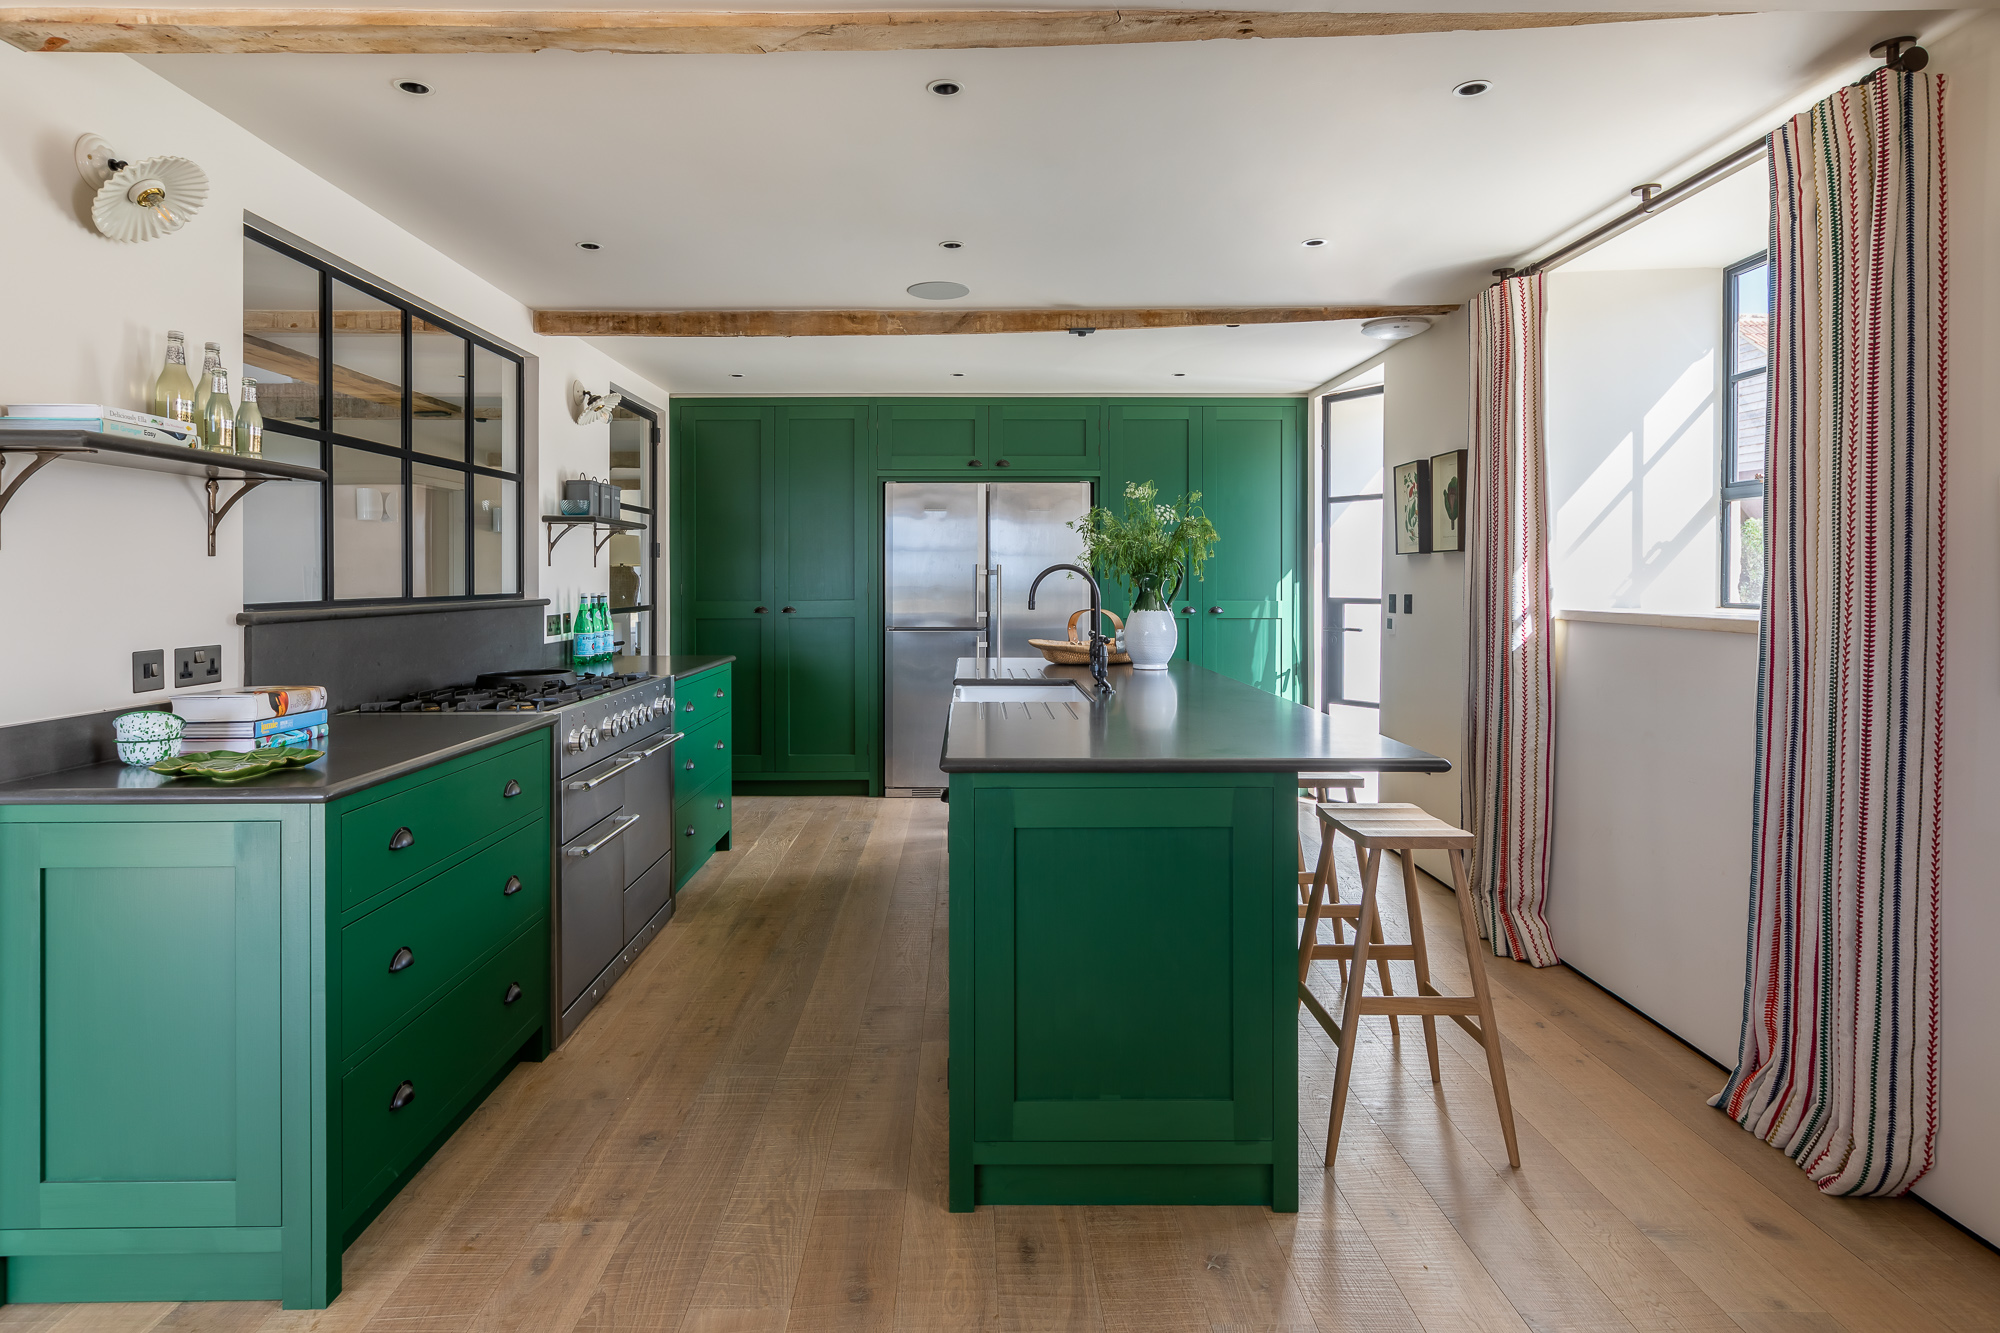 jonathan bond, interior photographer, kitchen marnhull